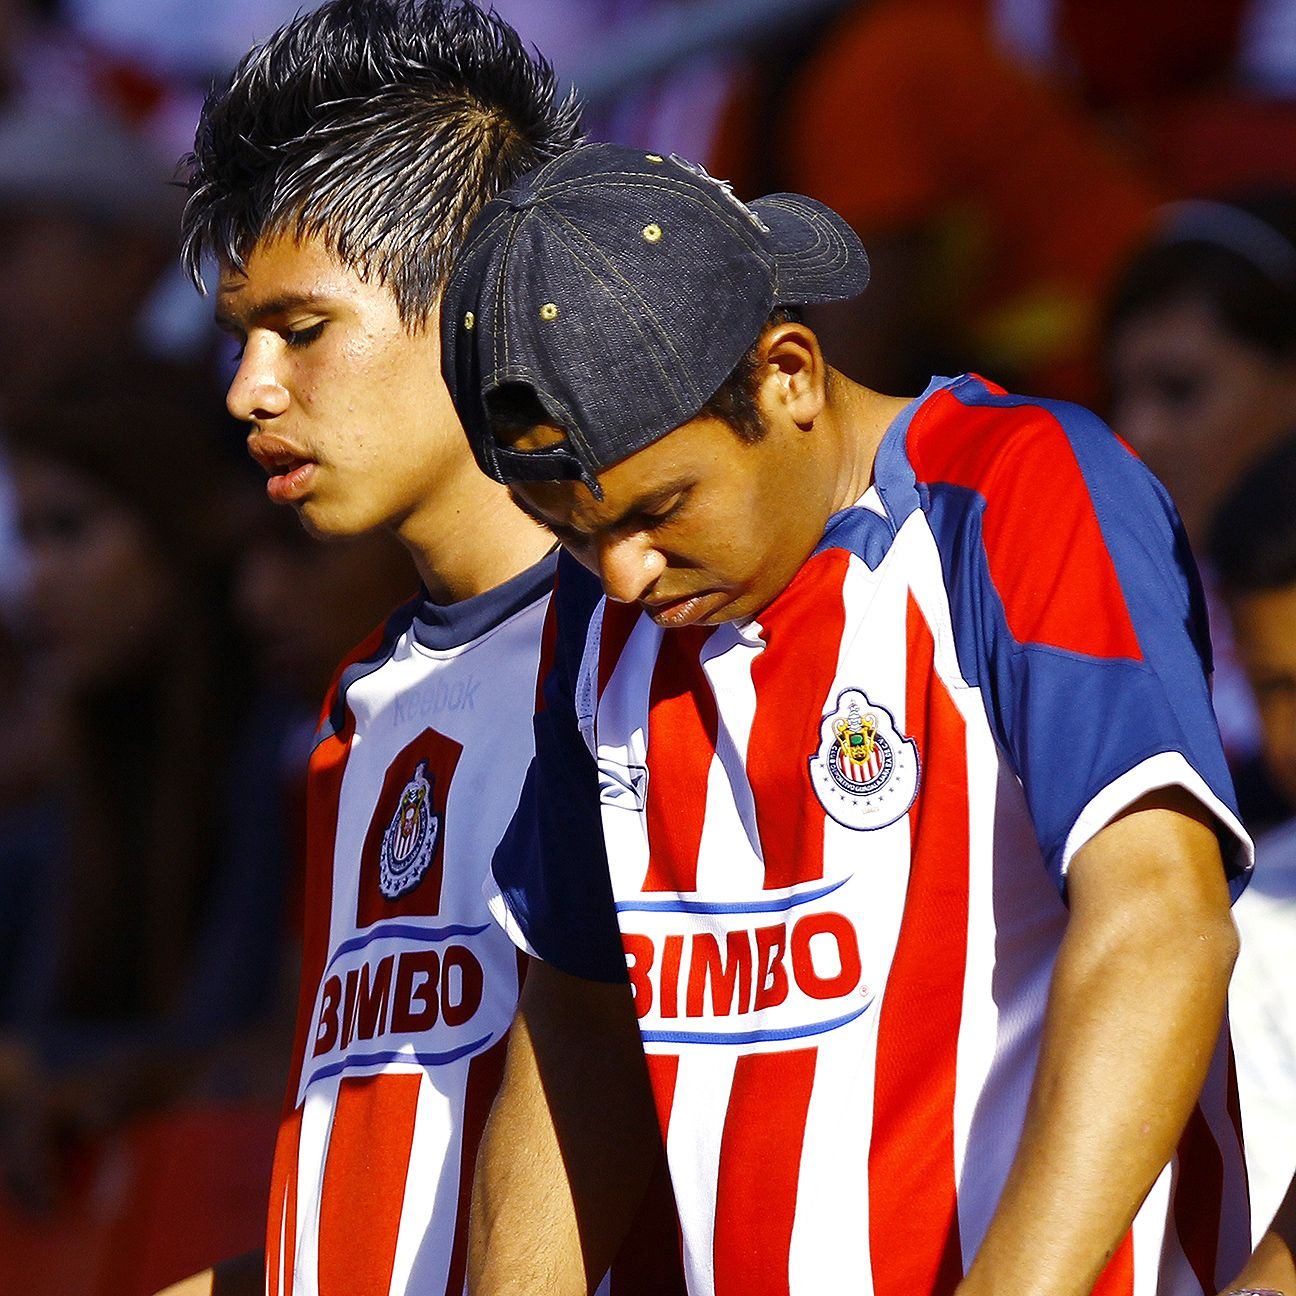 Seeing rivals Club America become Mexico's all-time leader in championships won must surely sting for Chivas fans.